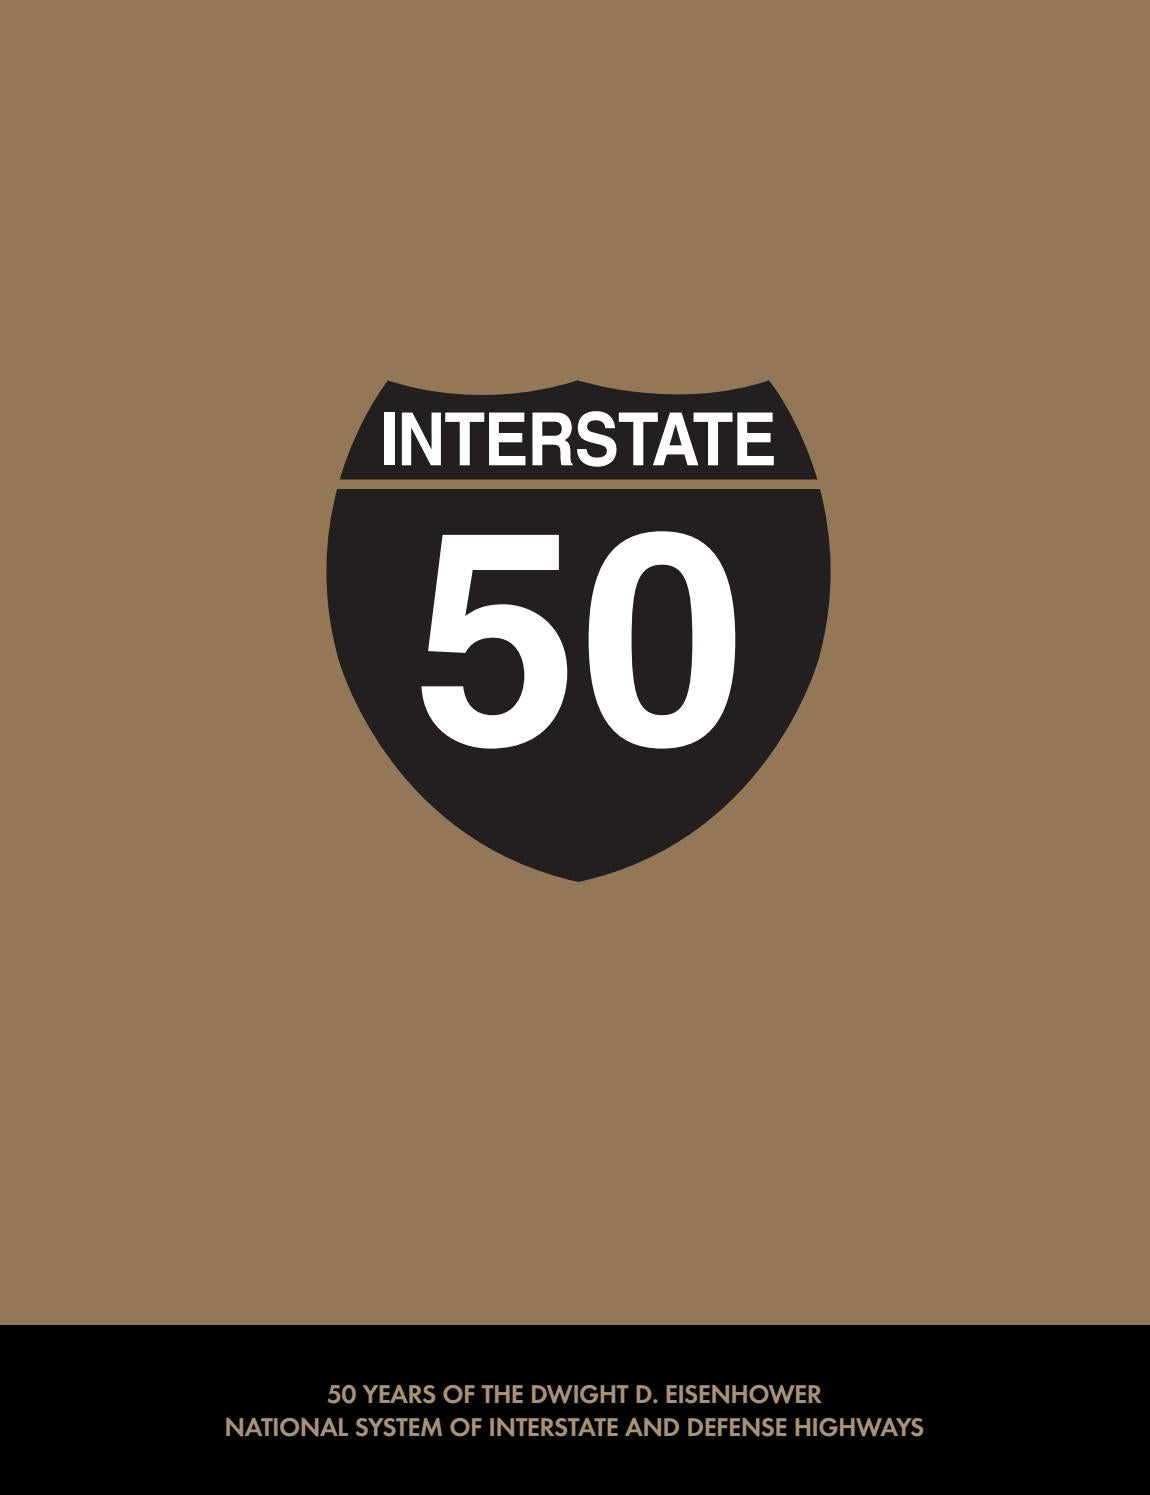 31ade778decb Interstate 50  50 Years of the Dwight D. Eisenhower National System of  Interstate   Defense Highways by Faircount Media Group - issuu